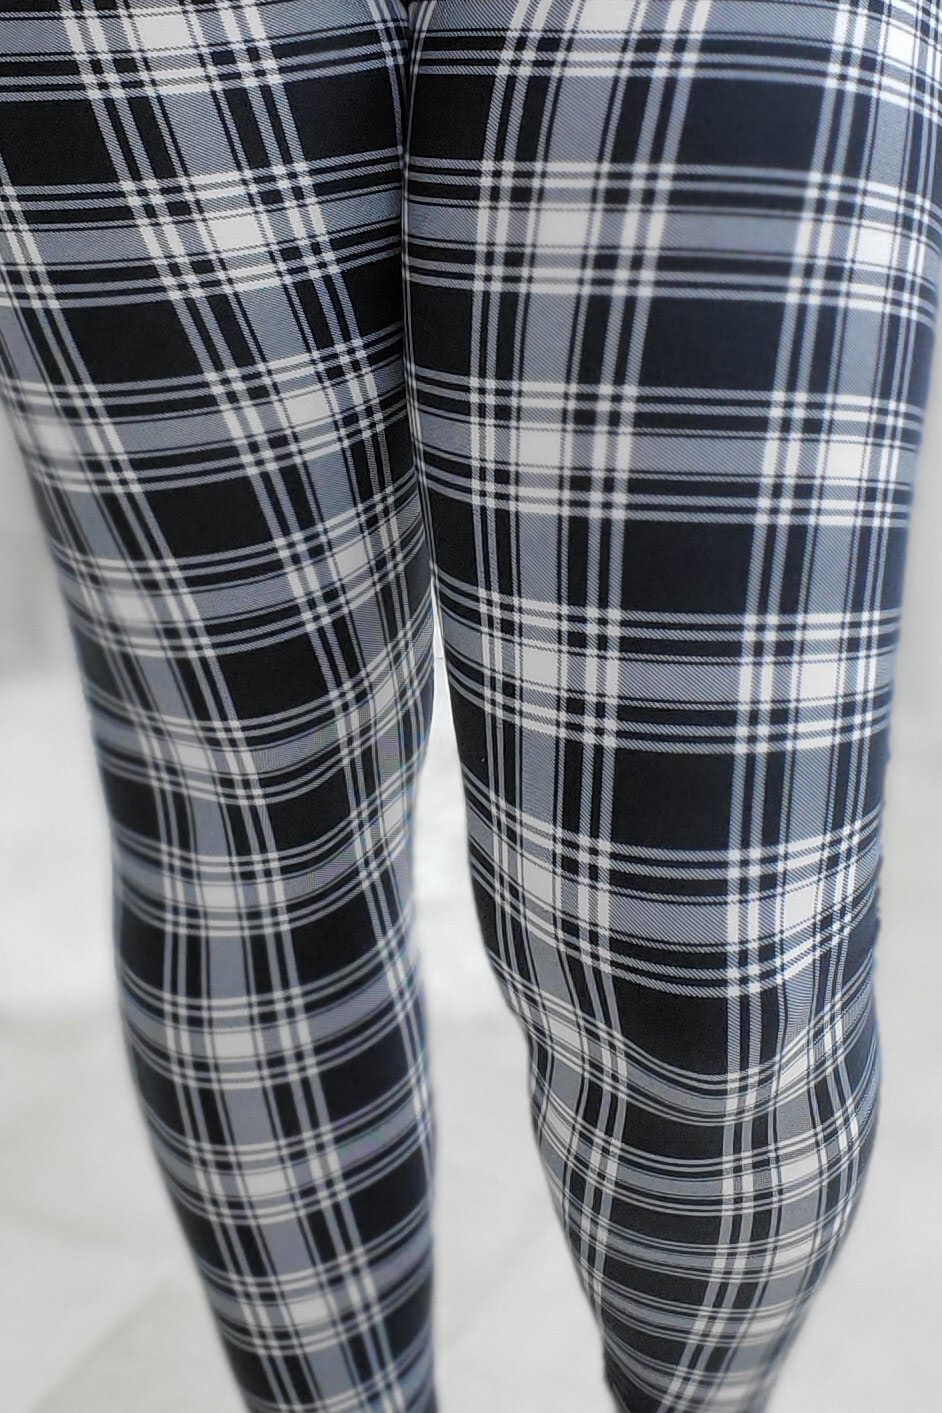 Old Fashioned Plaid Leggings